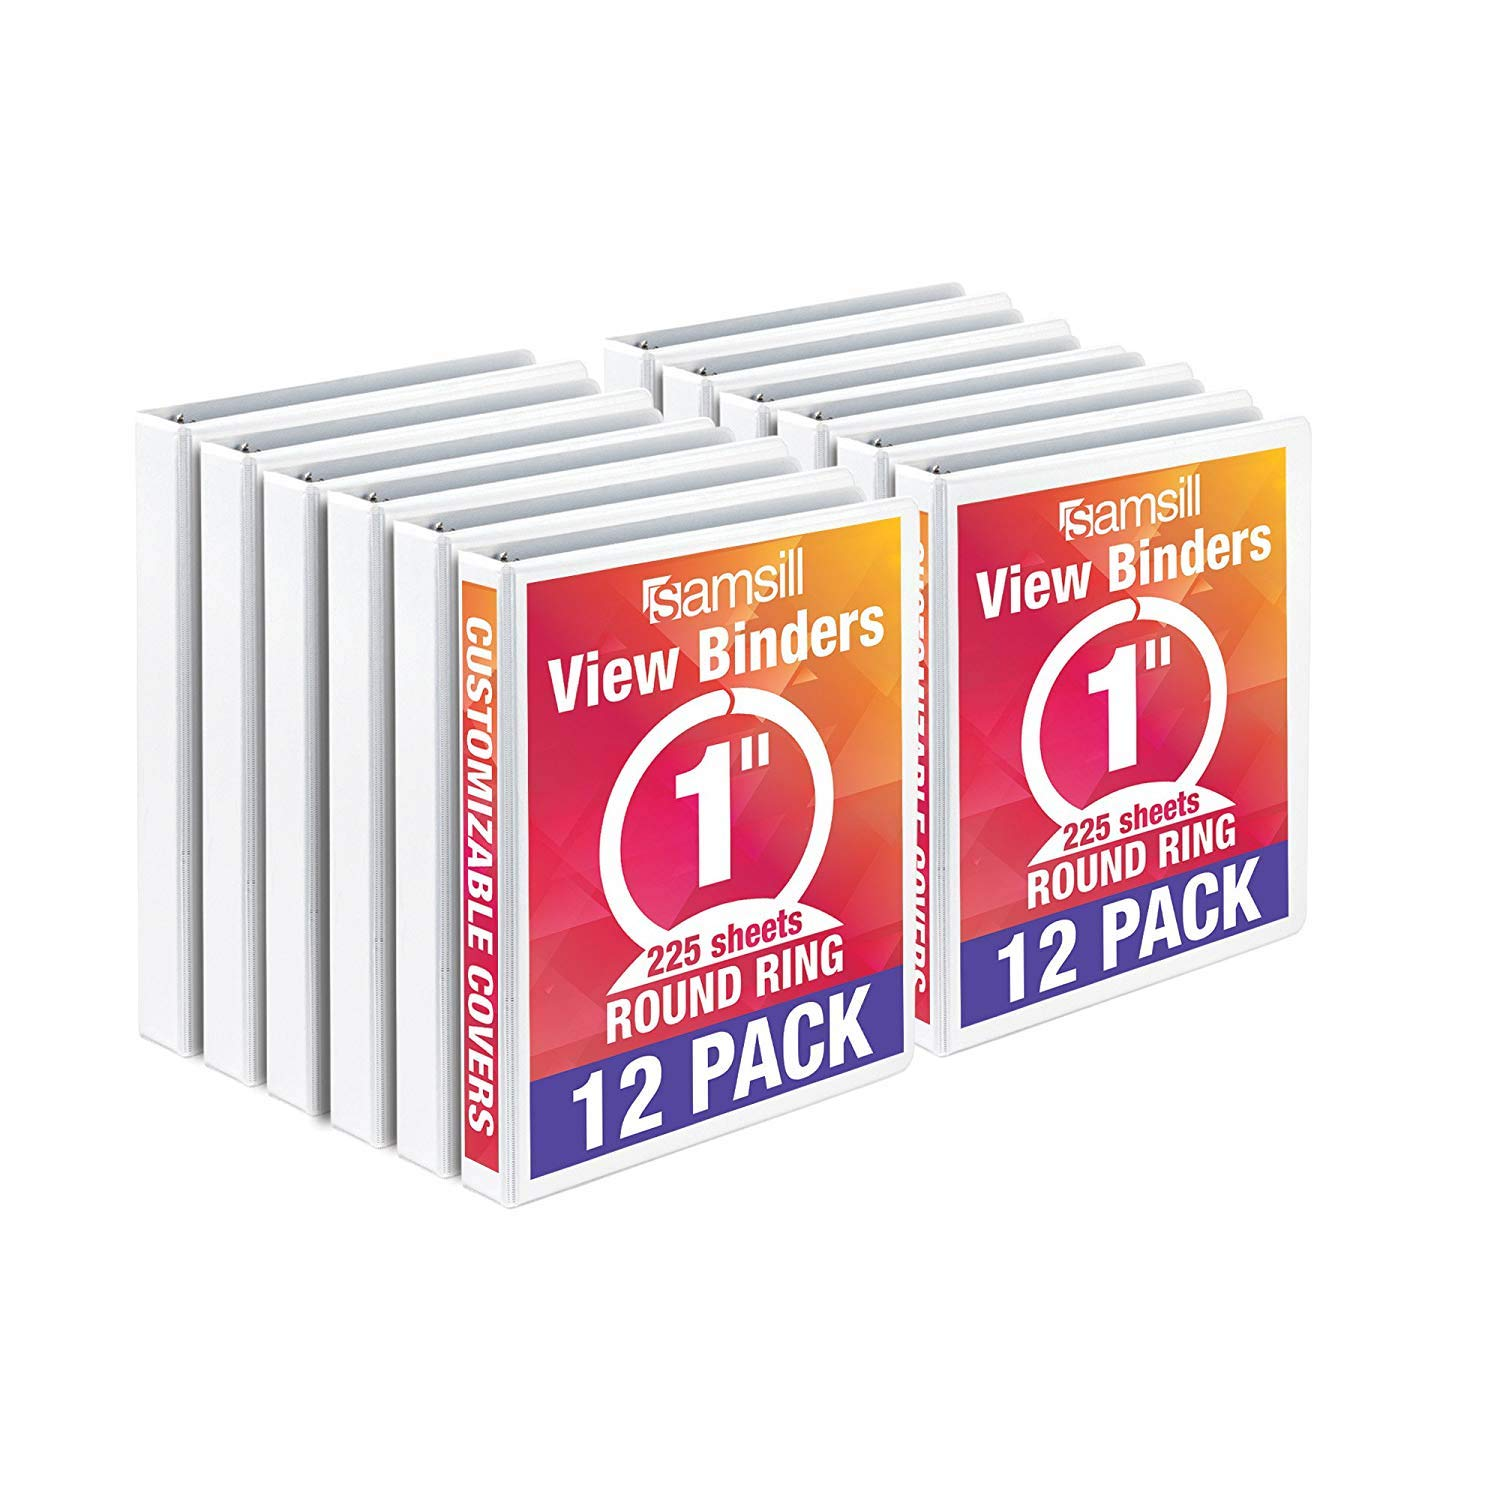 Samsill Economy 3 Ring View Binders, .5 Inch Round Ring, Customizable Clear View Cover, White, Bulk Binders - 12 Pack